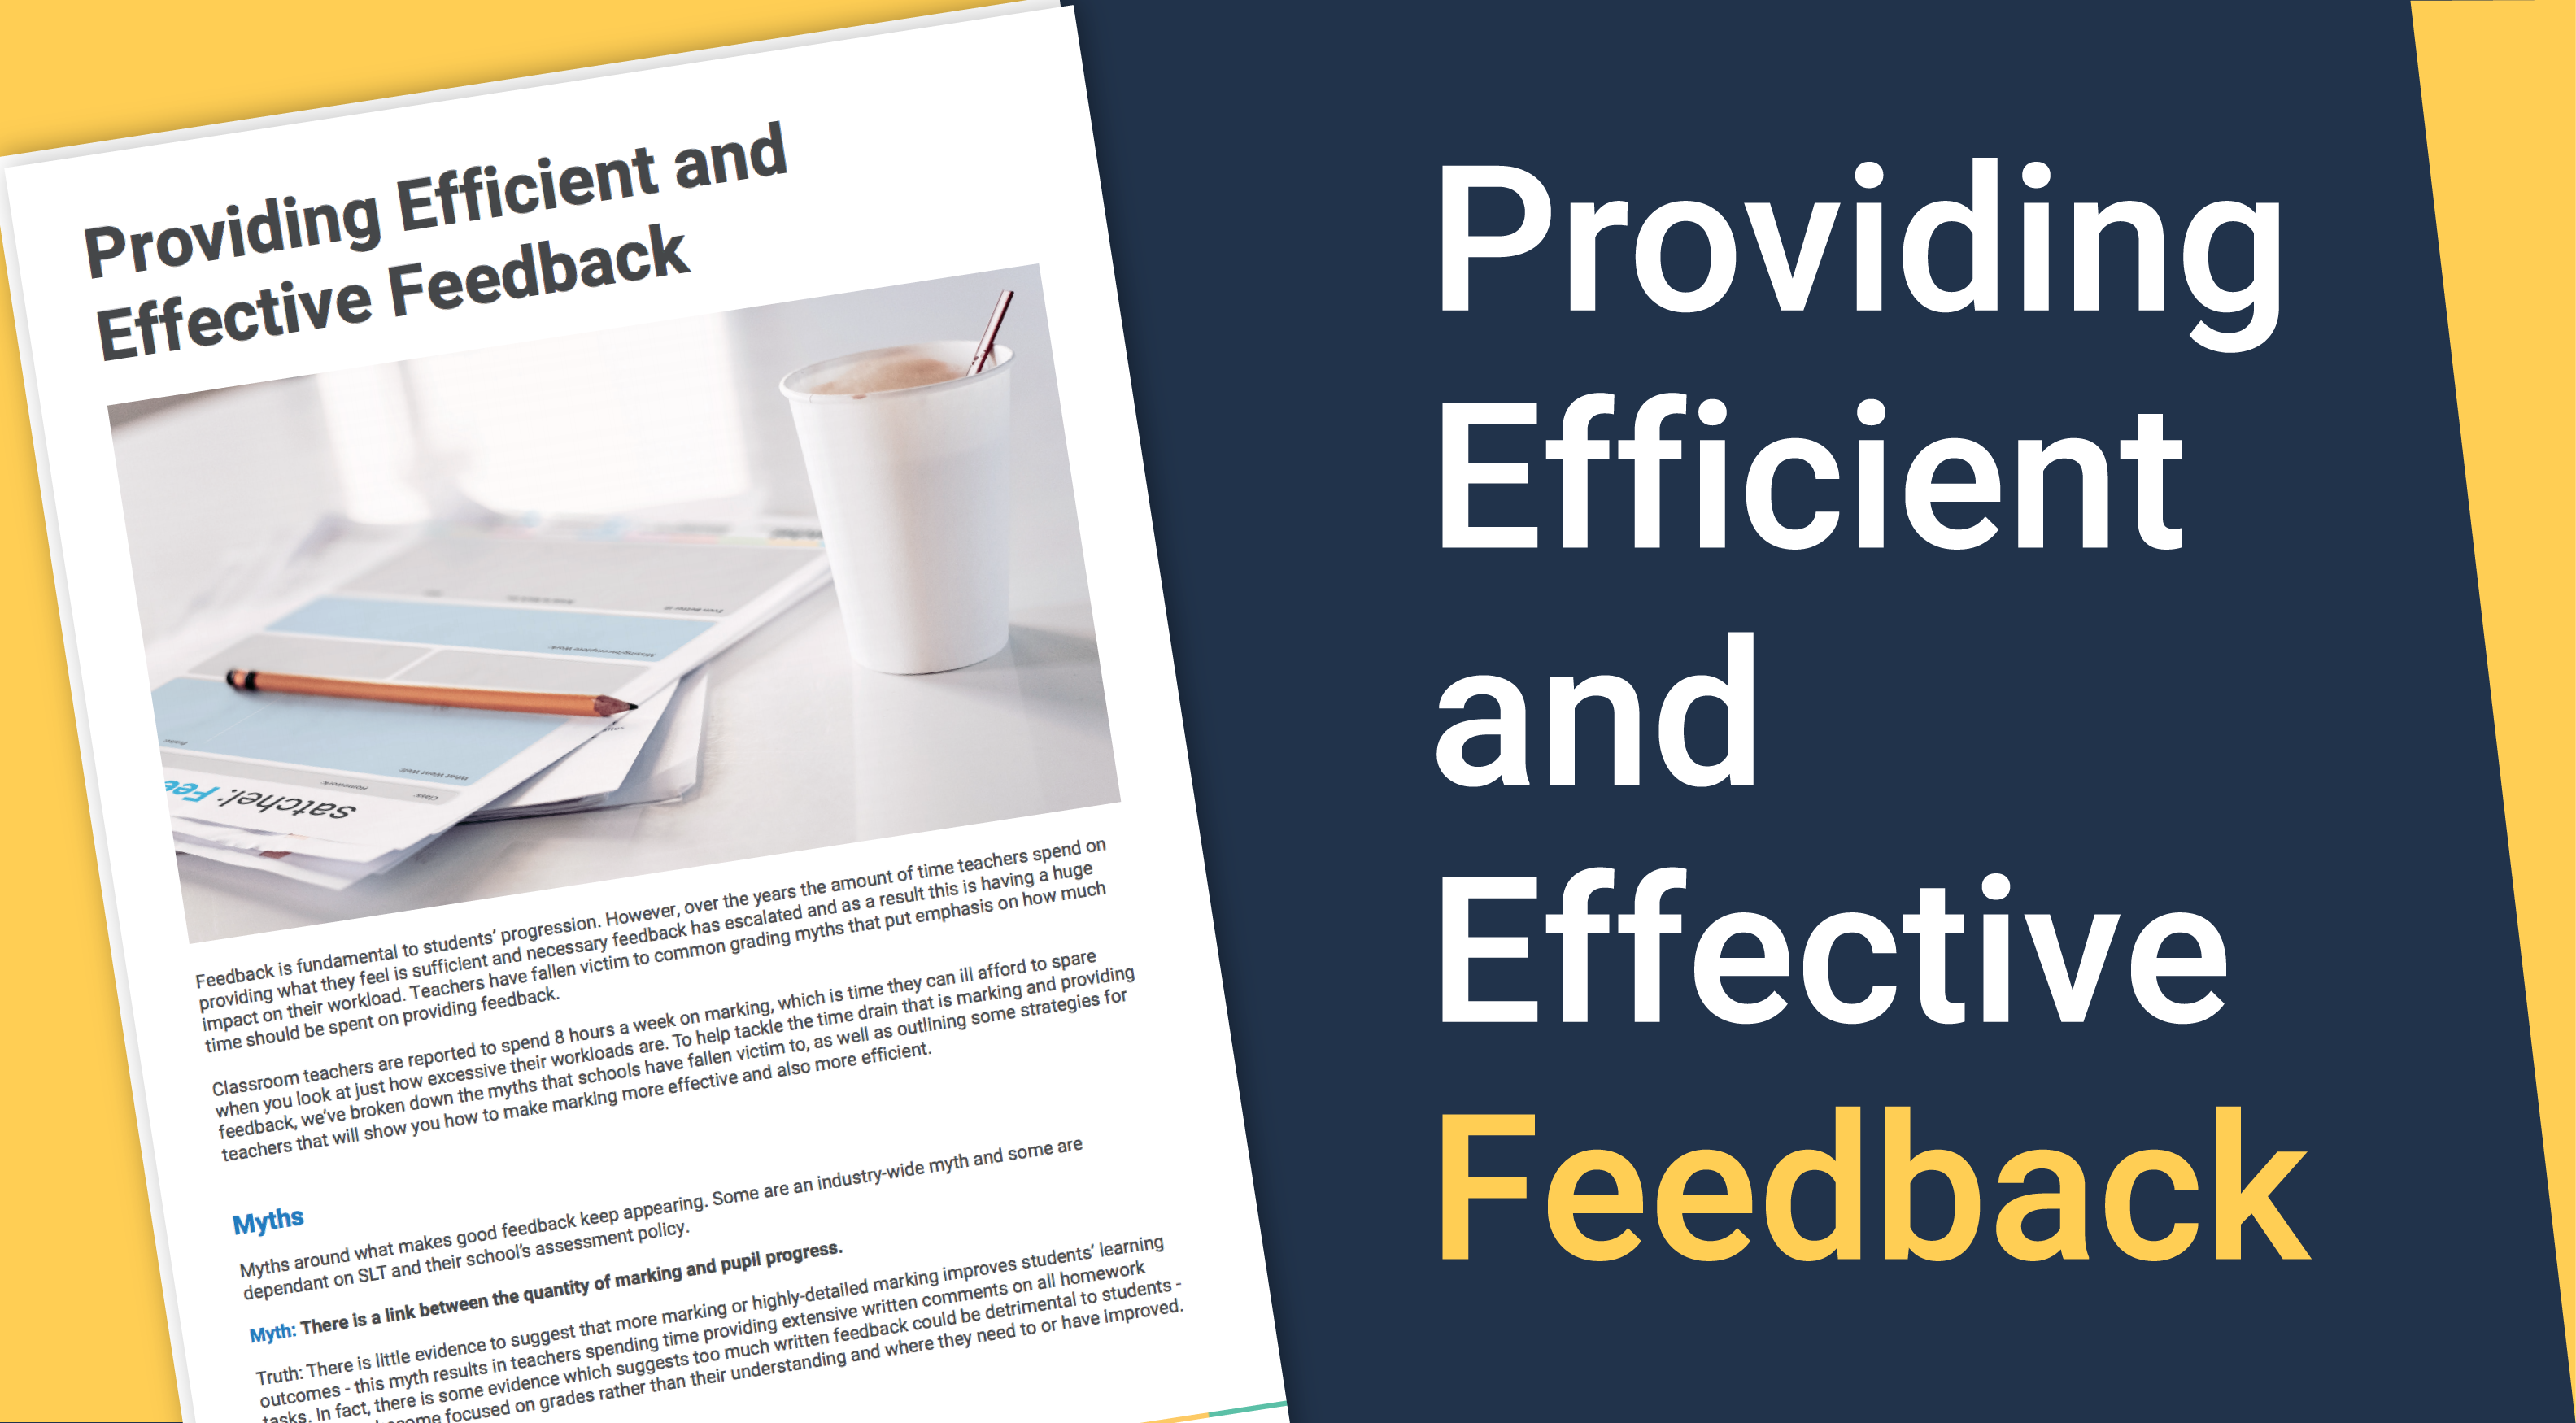 Providing Efficient Feedback